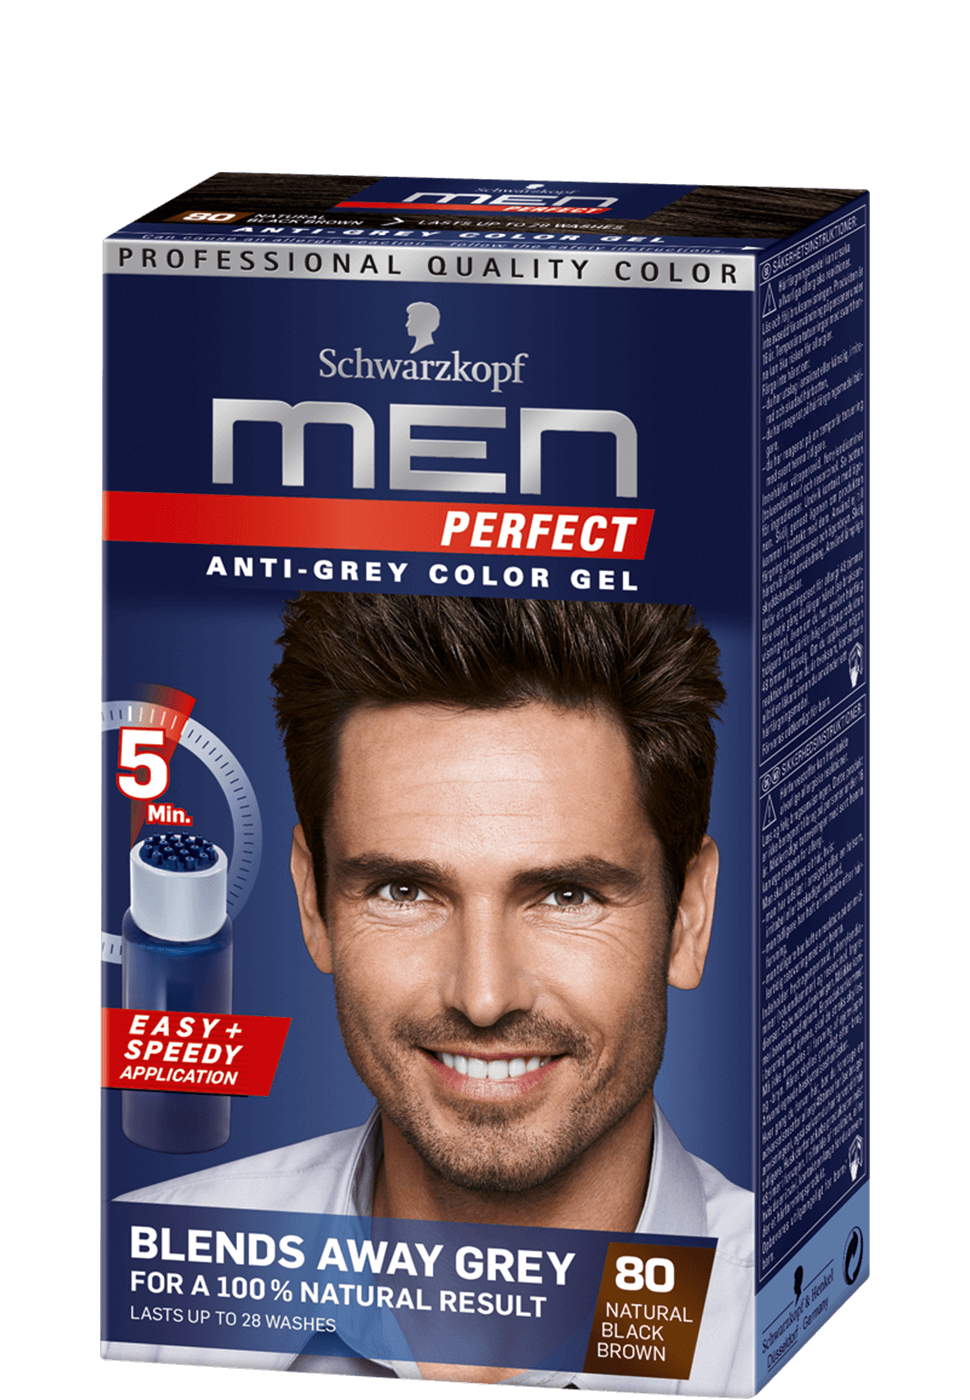 men_perfect_com_anti_grey_color_gel_80_natural_black_brown_970x1400